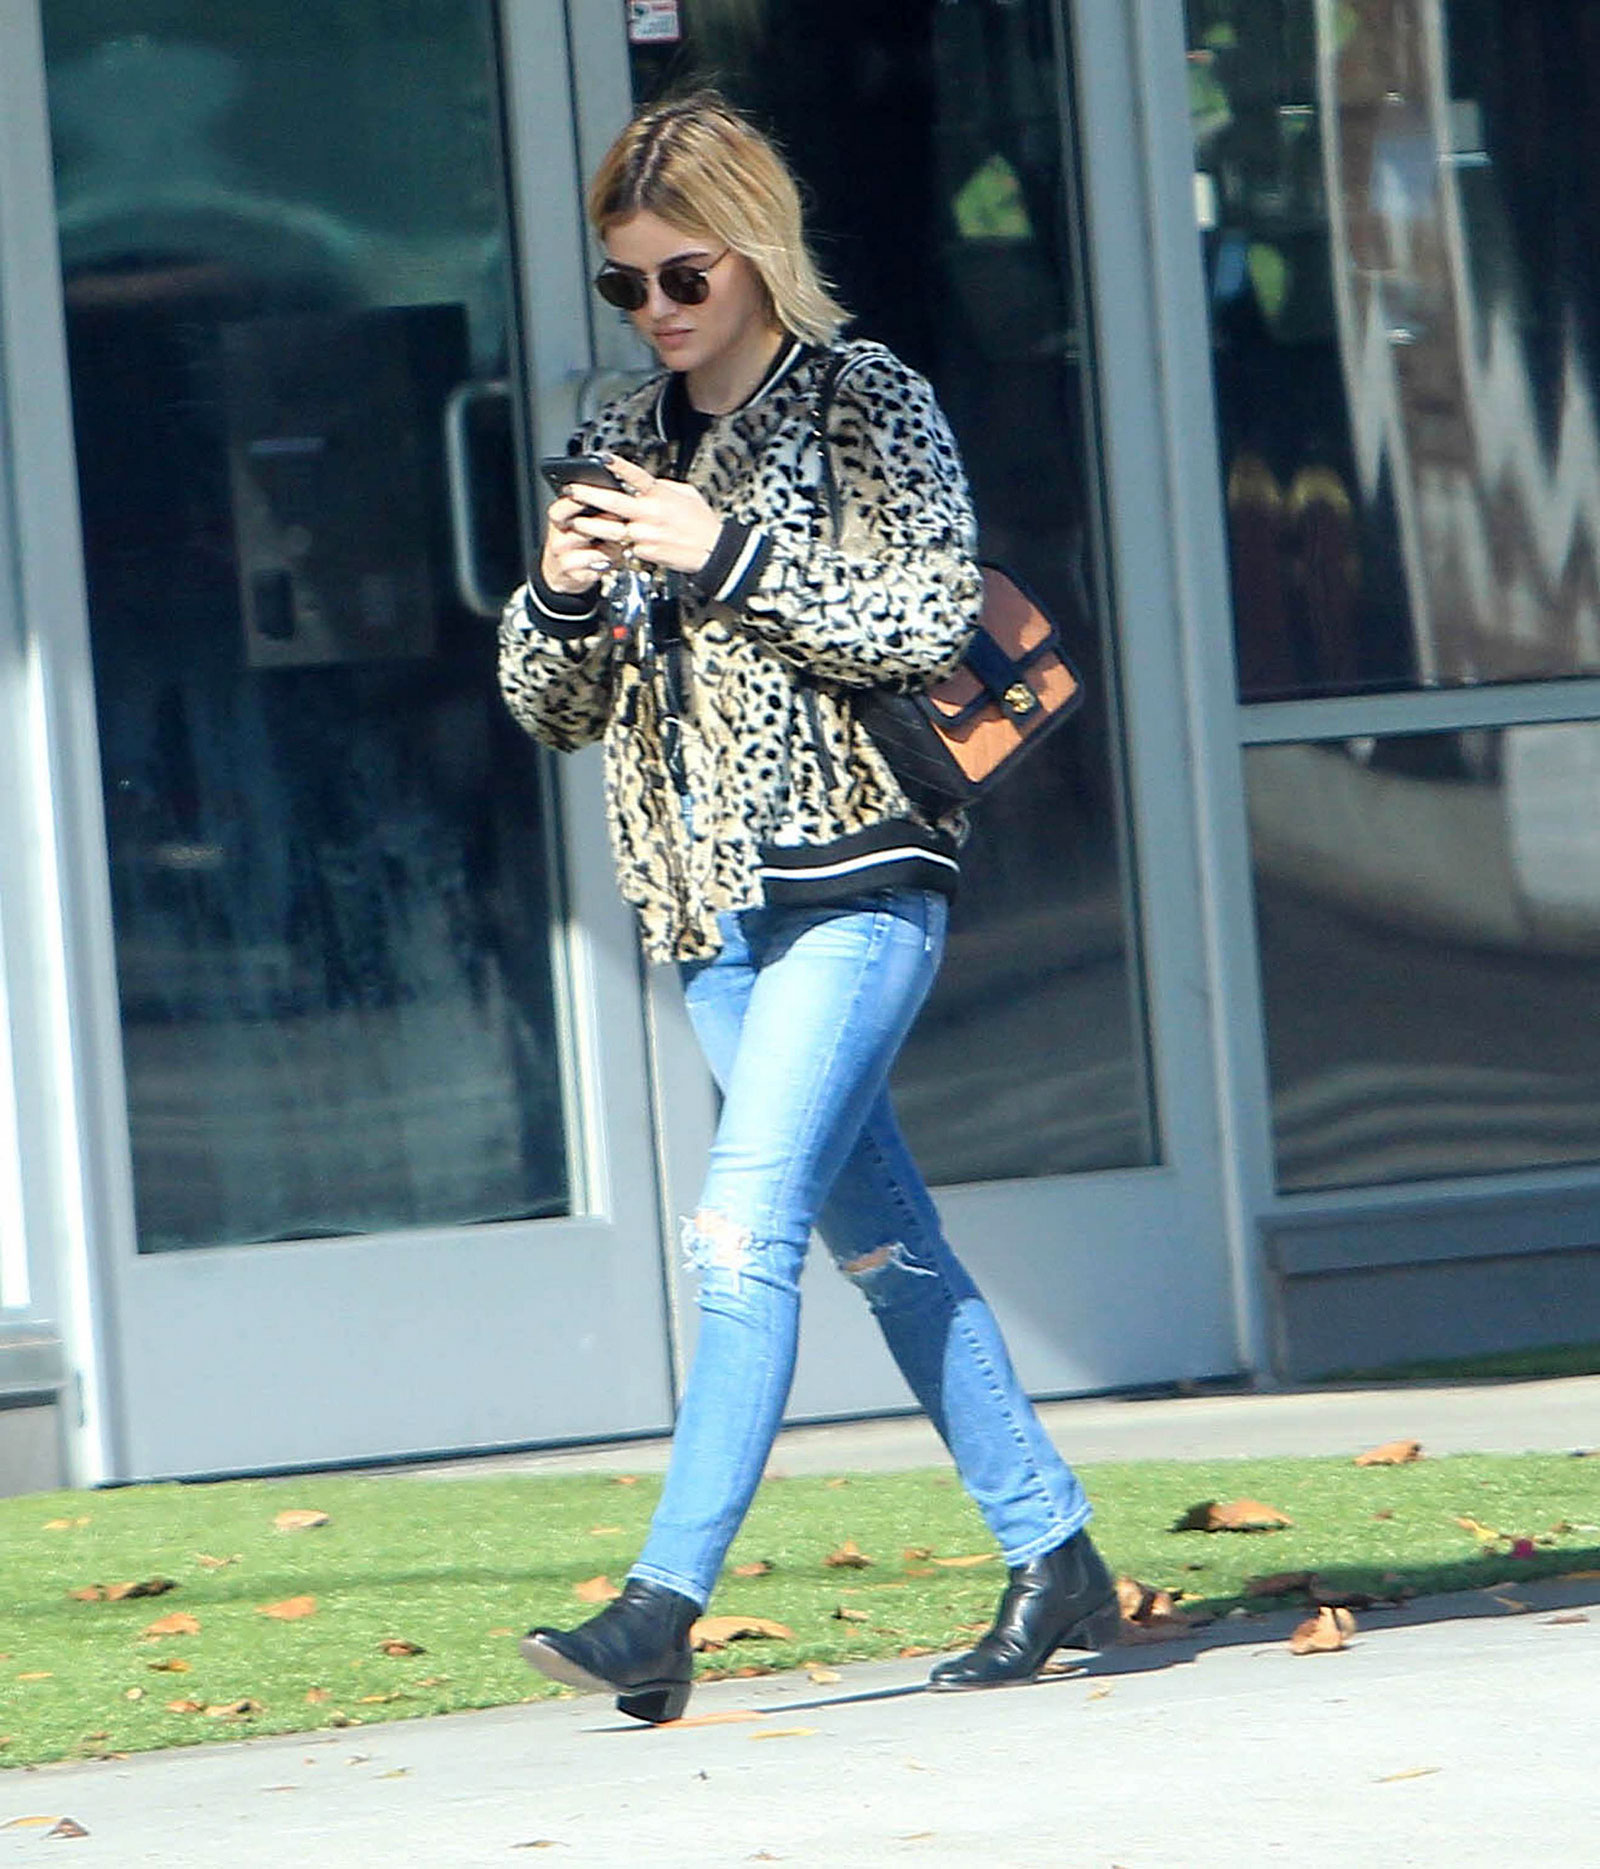 77dfd67710b Lucy Hale s Leopard Bomber Jacket Look for Less - The Budget Babe ...